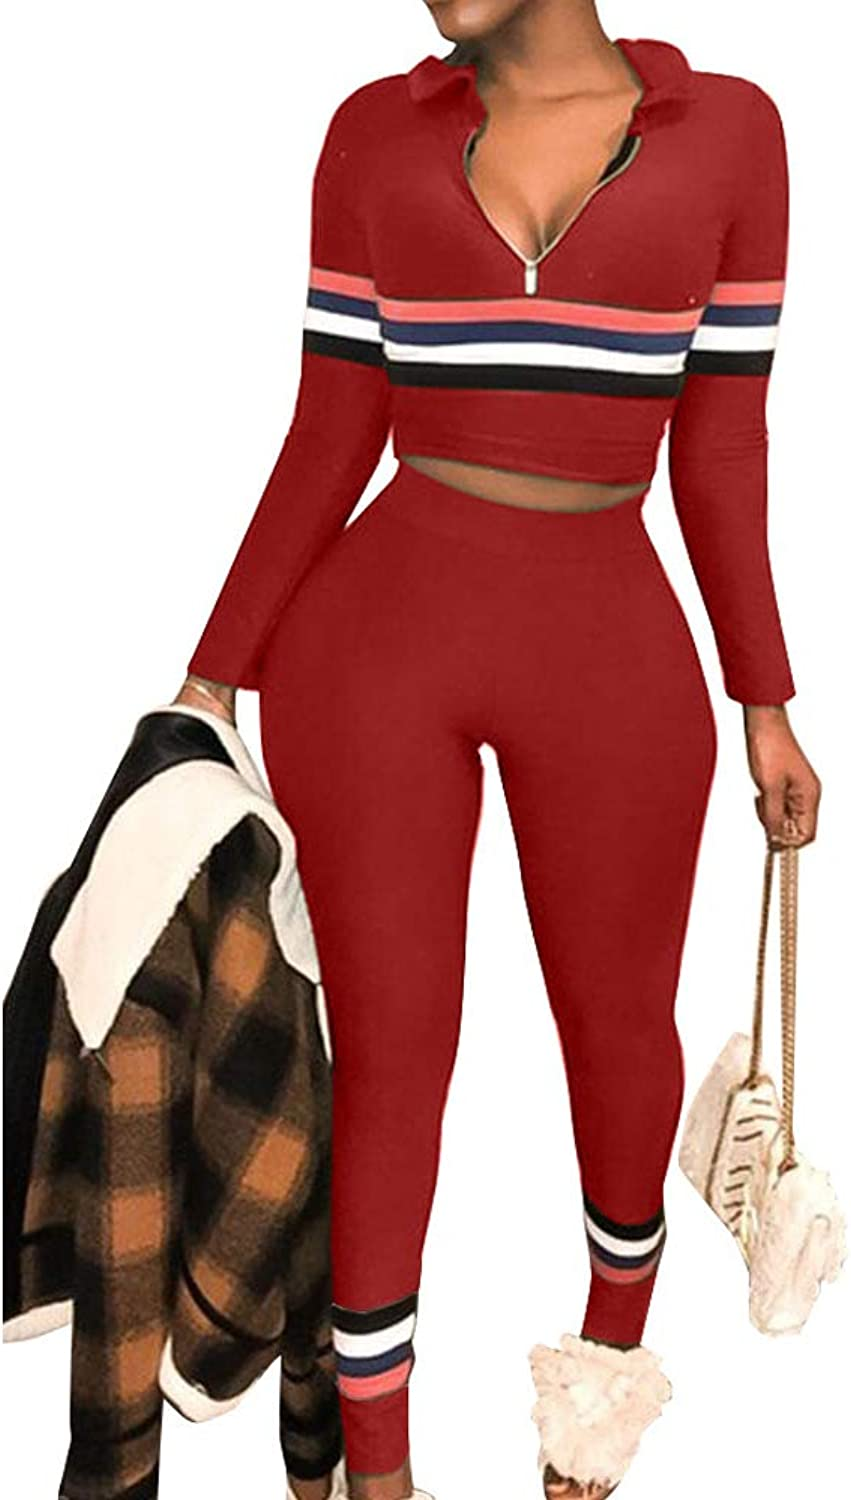 Nhicdns Women's Two Piece Outfits Long Sleeve 1 2 Zipper Striped Tracksuits Set Sweatsuit Bodycon Jumpsuit